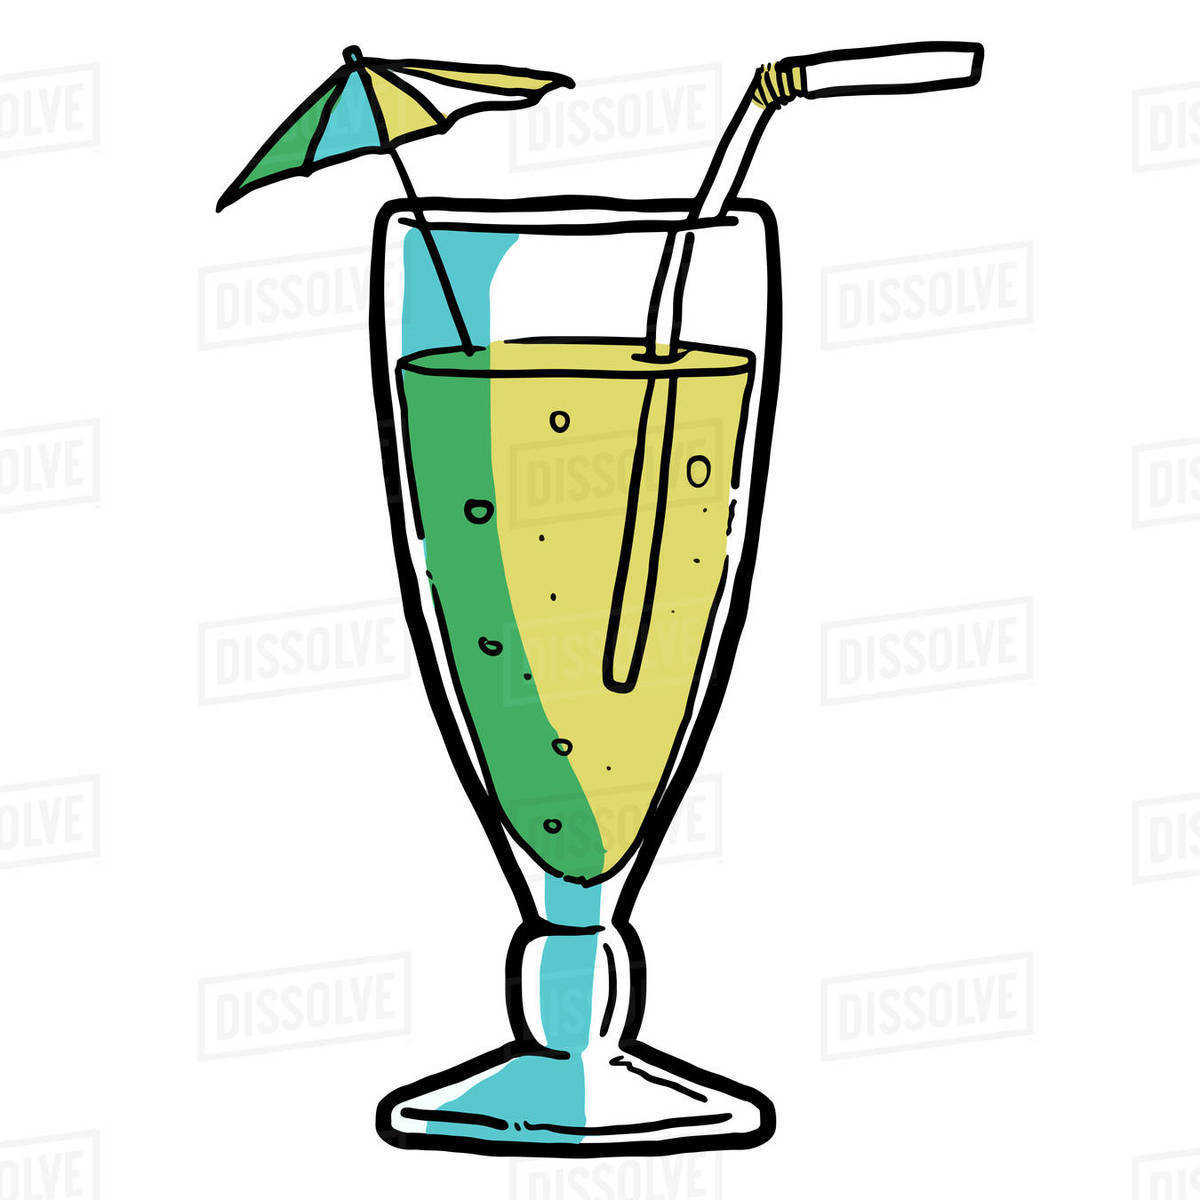 Illustration of cocktail glass with drinking straw and cocktail umbrella isolated on white background Royalty-free stock photo